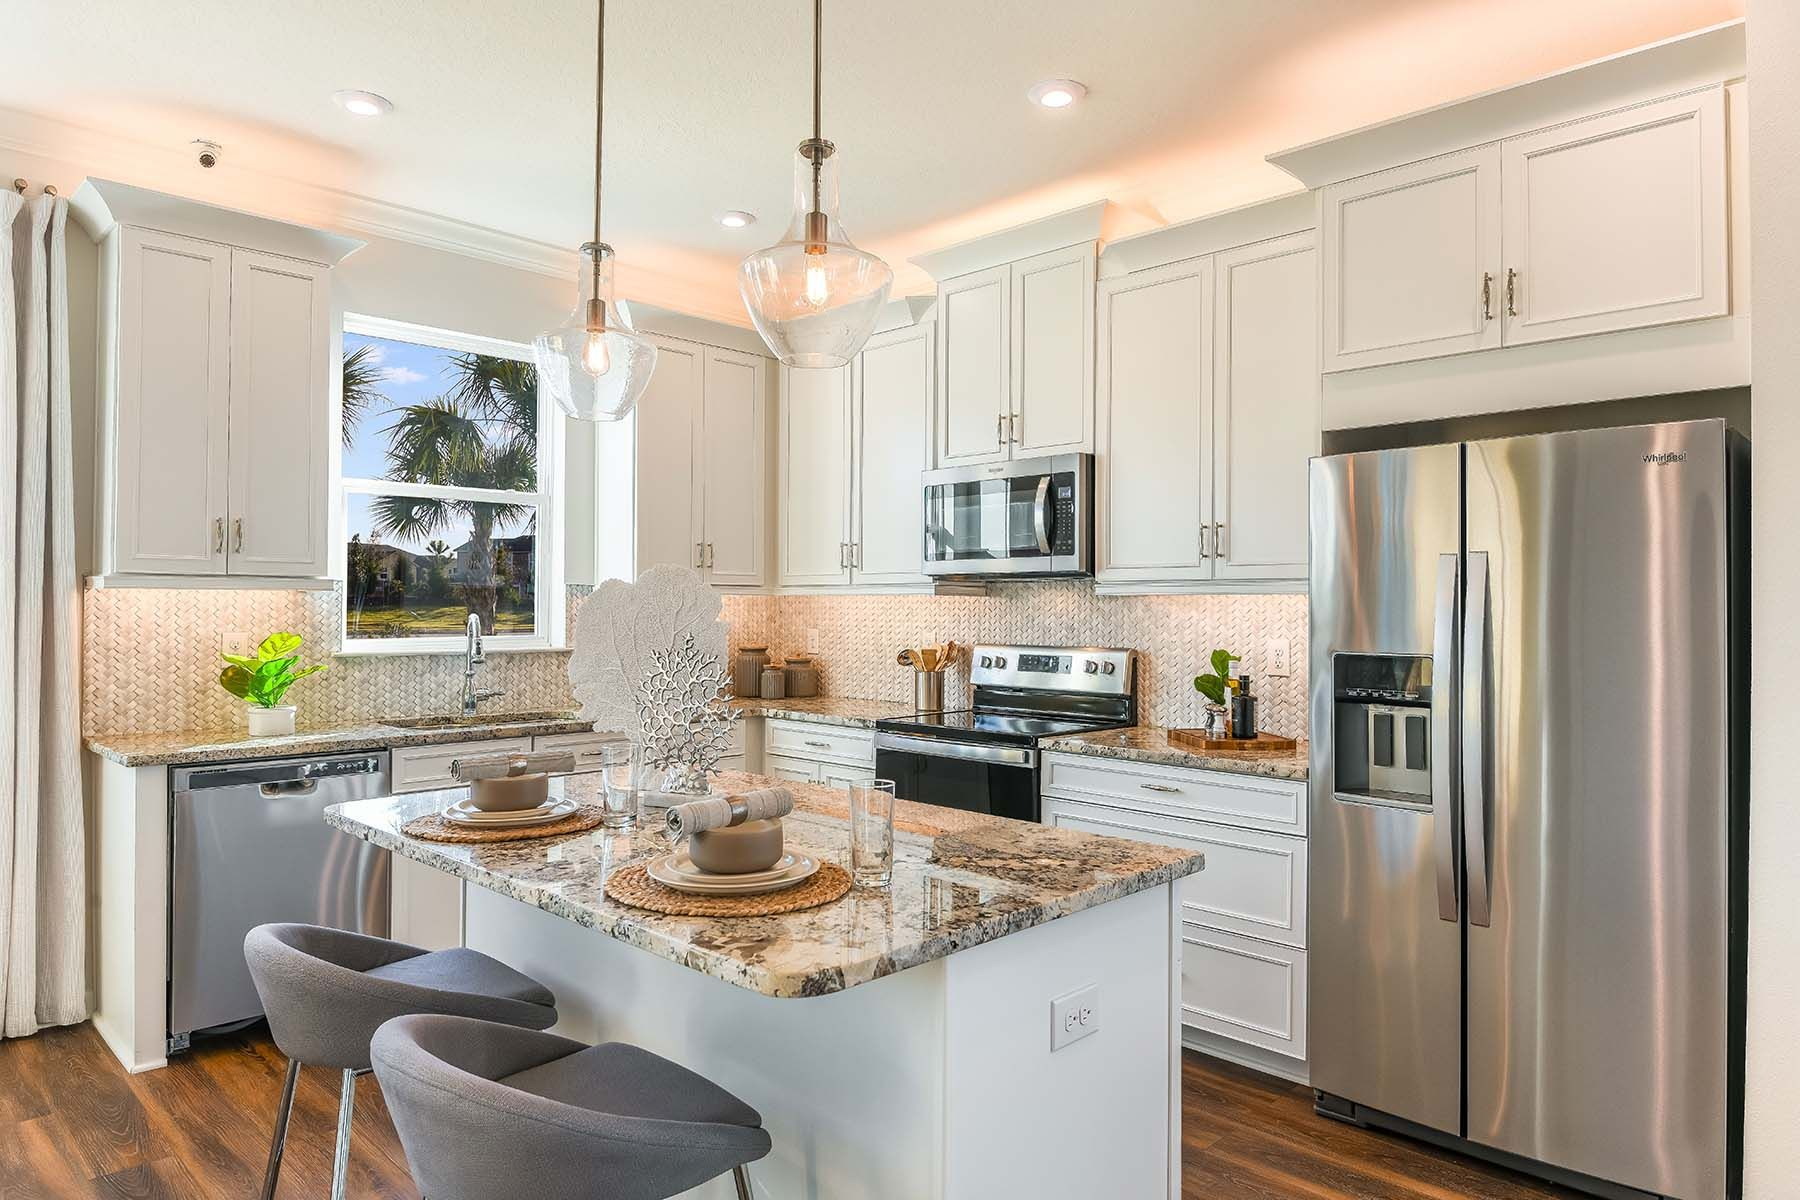 Kitchen featured in the Driftwood II End By Mattamy Homes in Sarasota-Bradenton, FL